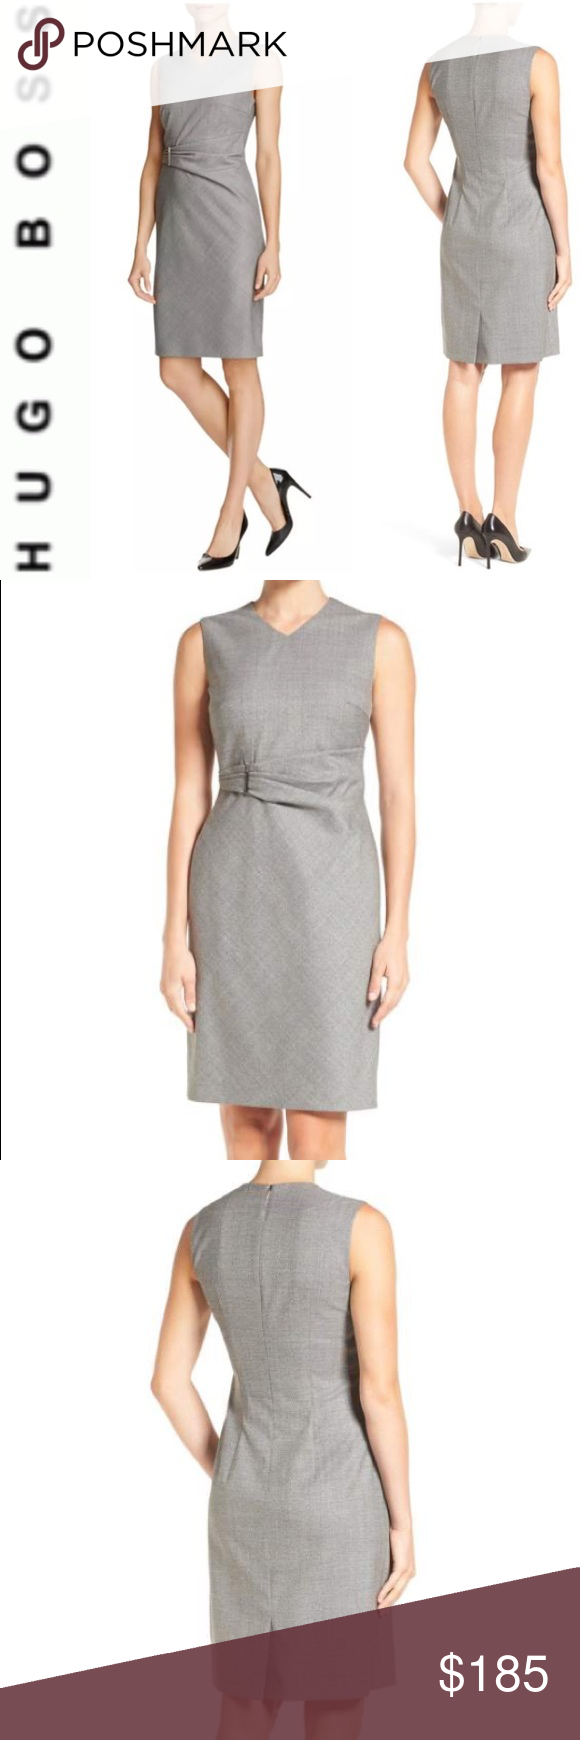 be1f64c2 MAKEANOFFER🔥HUGO BOSS VIRGIN WOOL SHEATH DRESS 14 Gorgeous HUGO BOSS  Dakirsa virgin wool dress